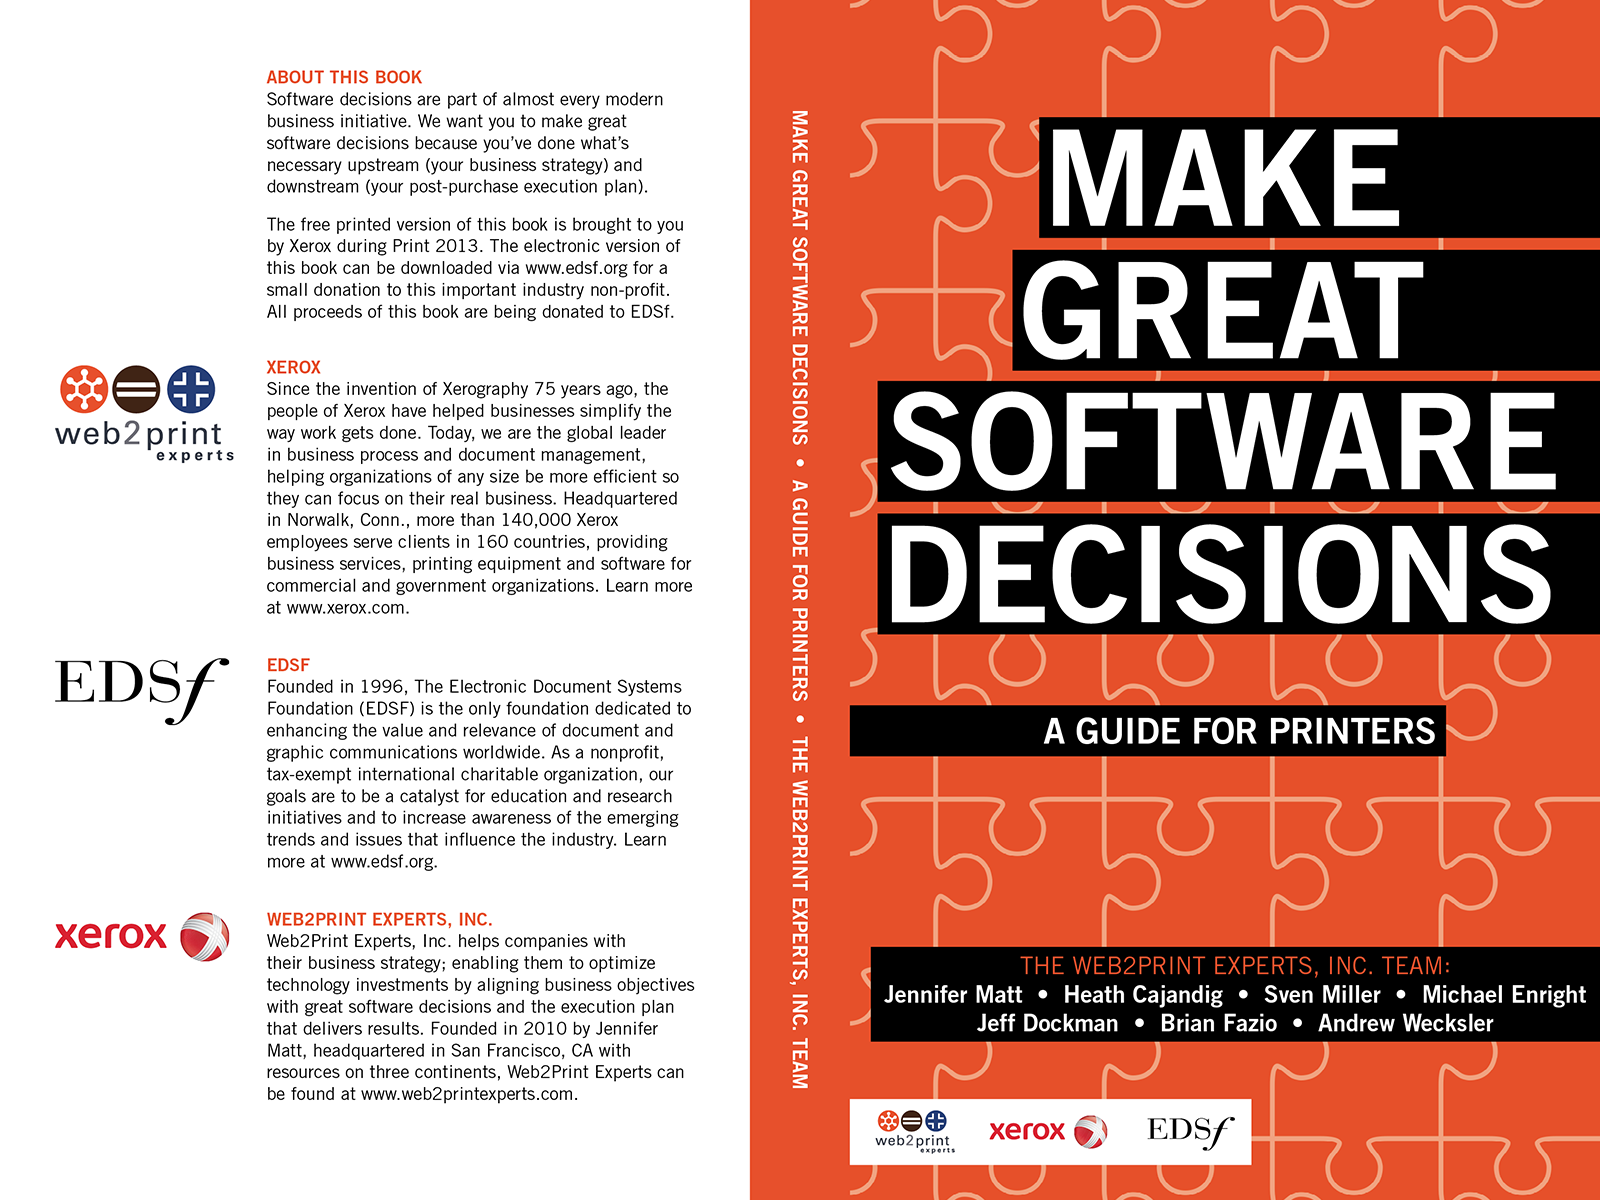 Book Cover Making Program ~ Mike donovan design make great software decisions book cover